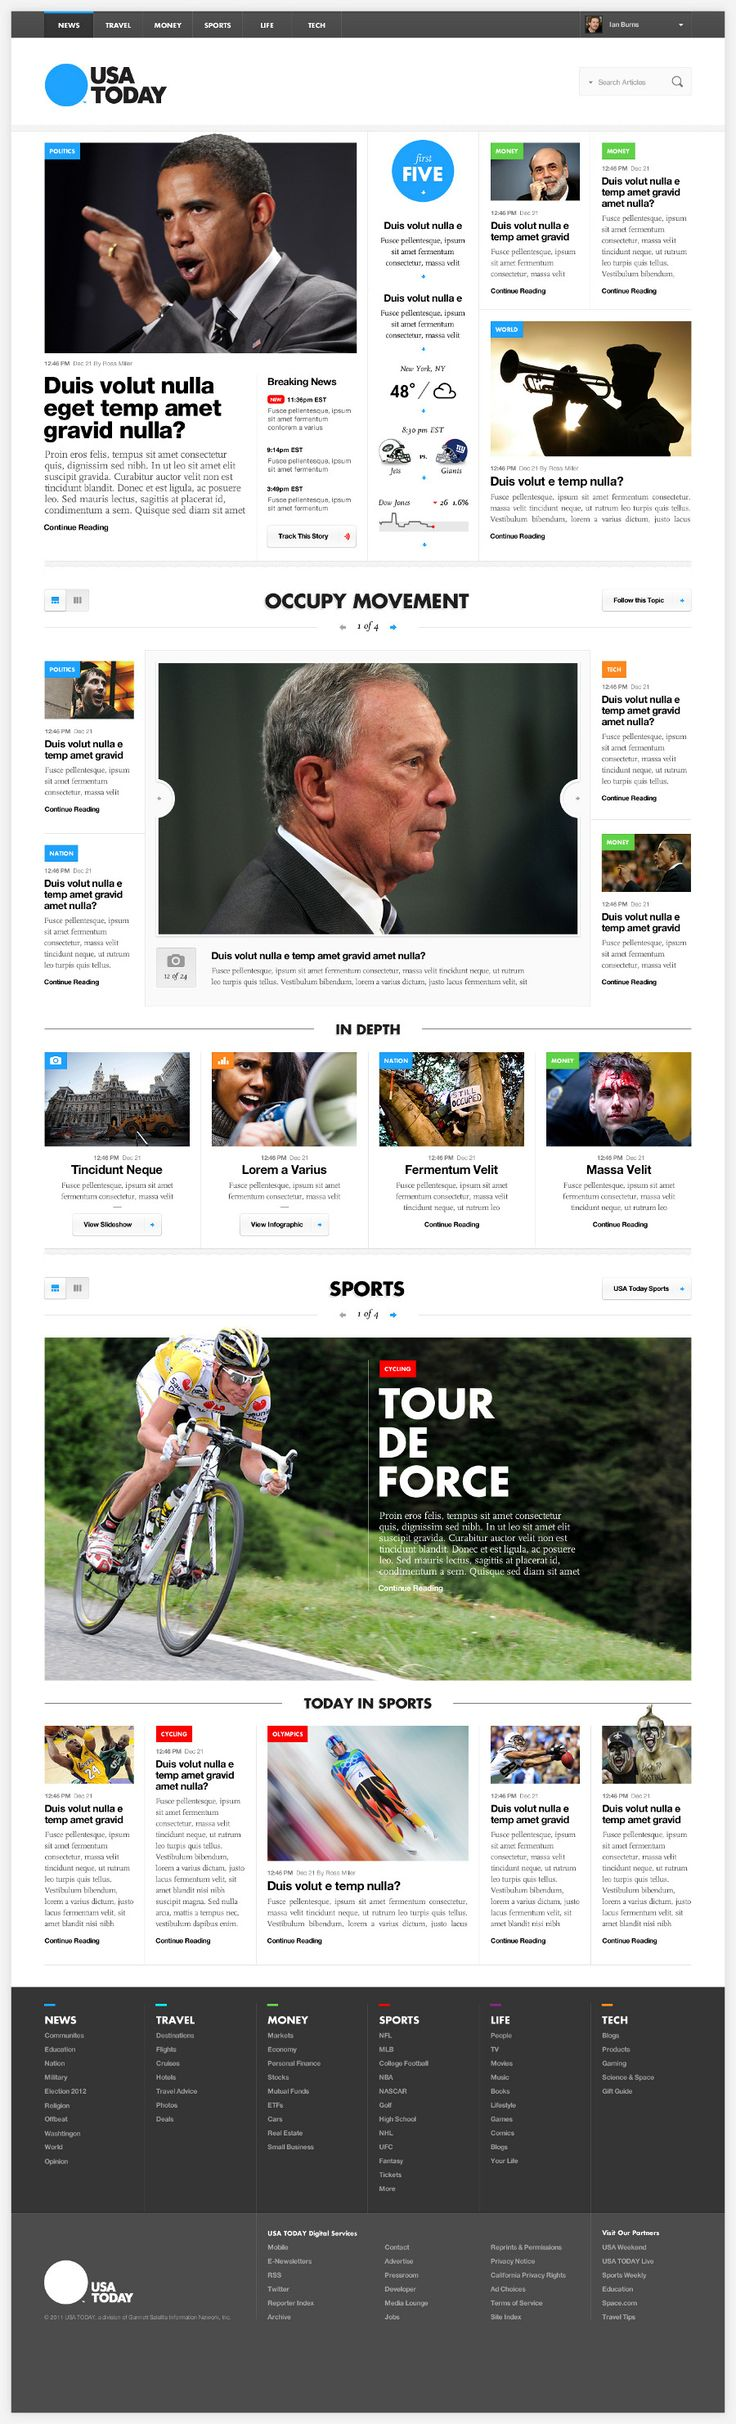 USA Today - awesome redesign